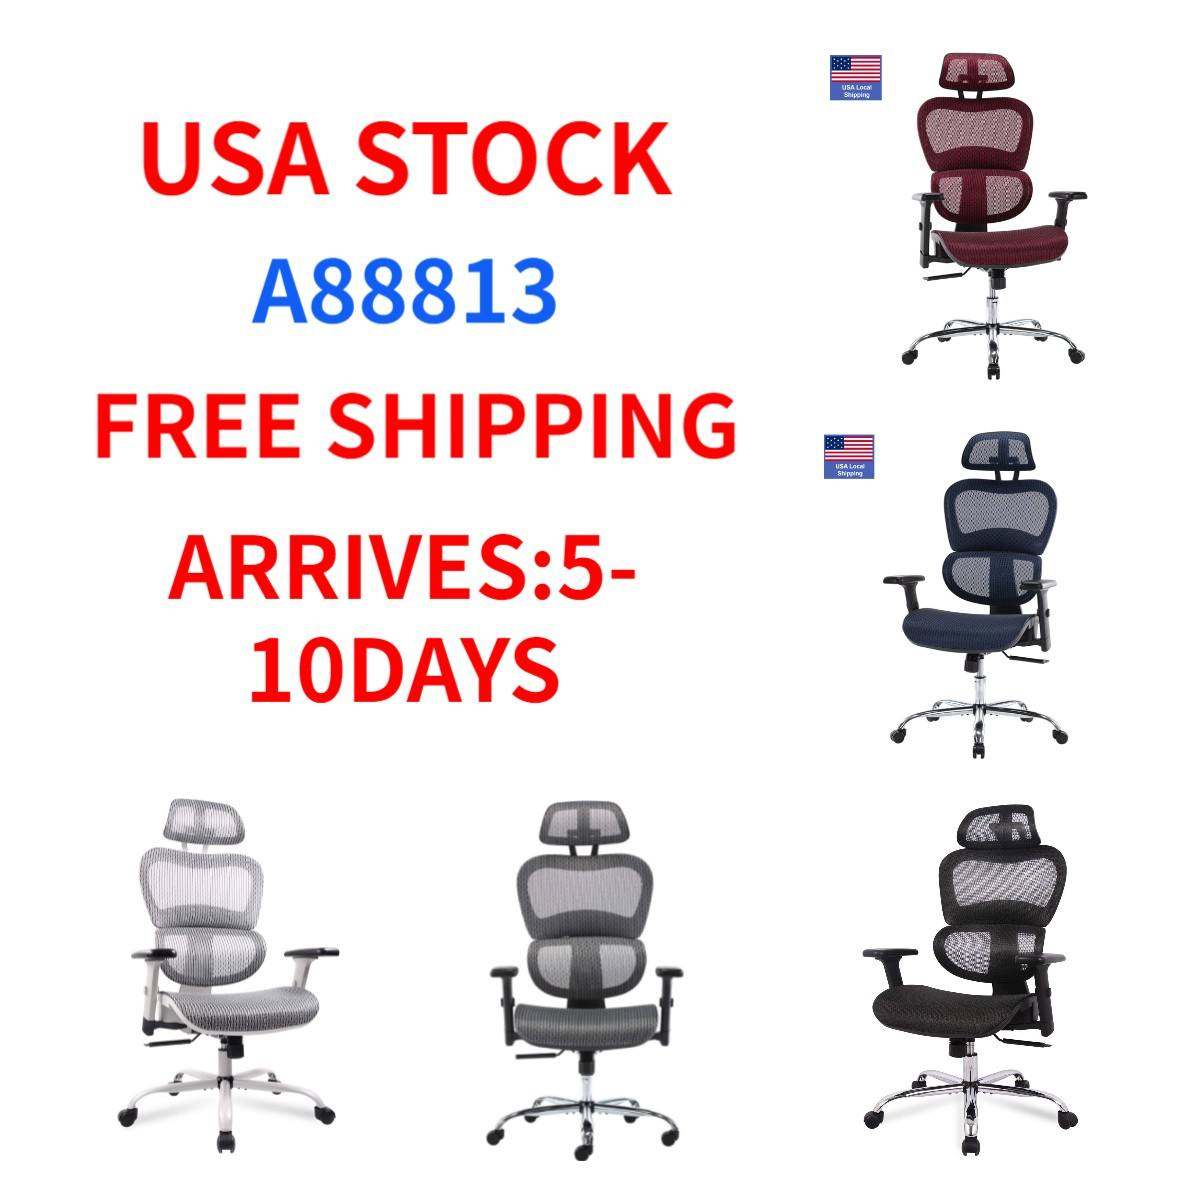 USA STOCK Most Popular comfortable black mesh office chairs high back ergonomic Adjustable Swivel office chair